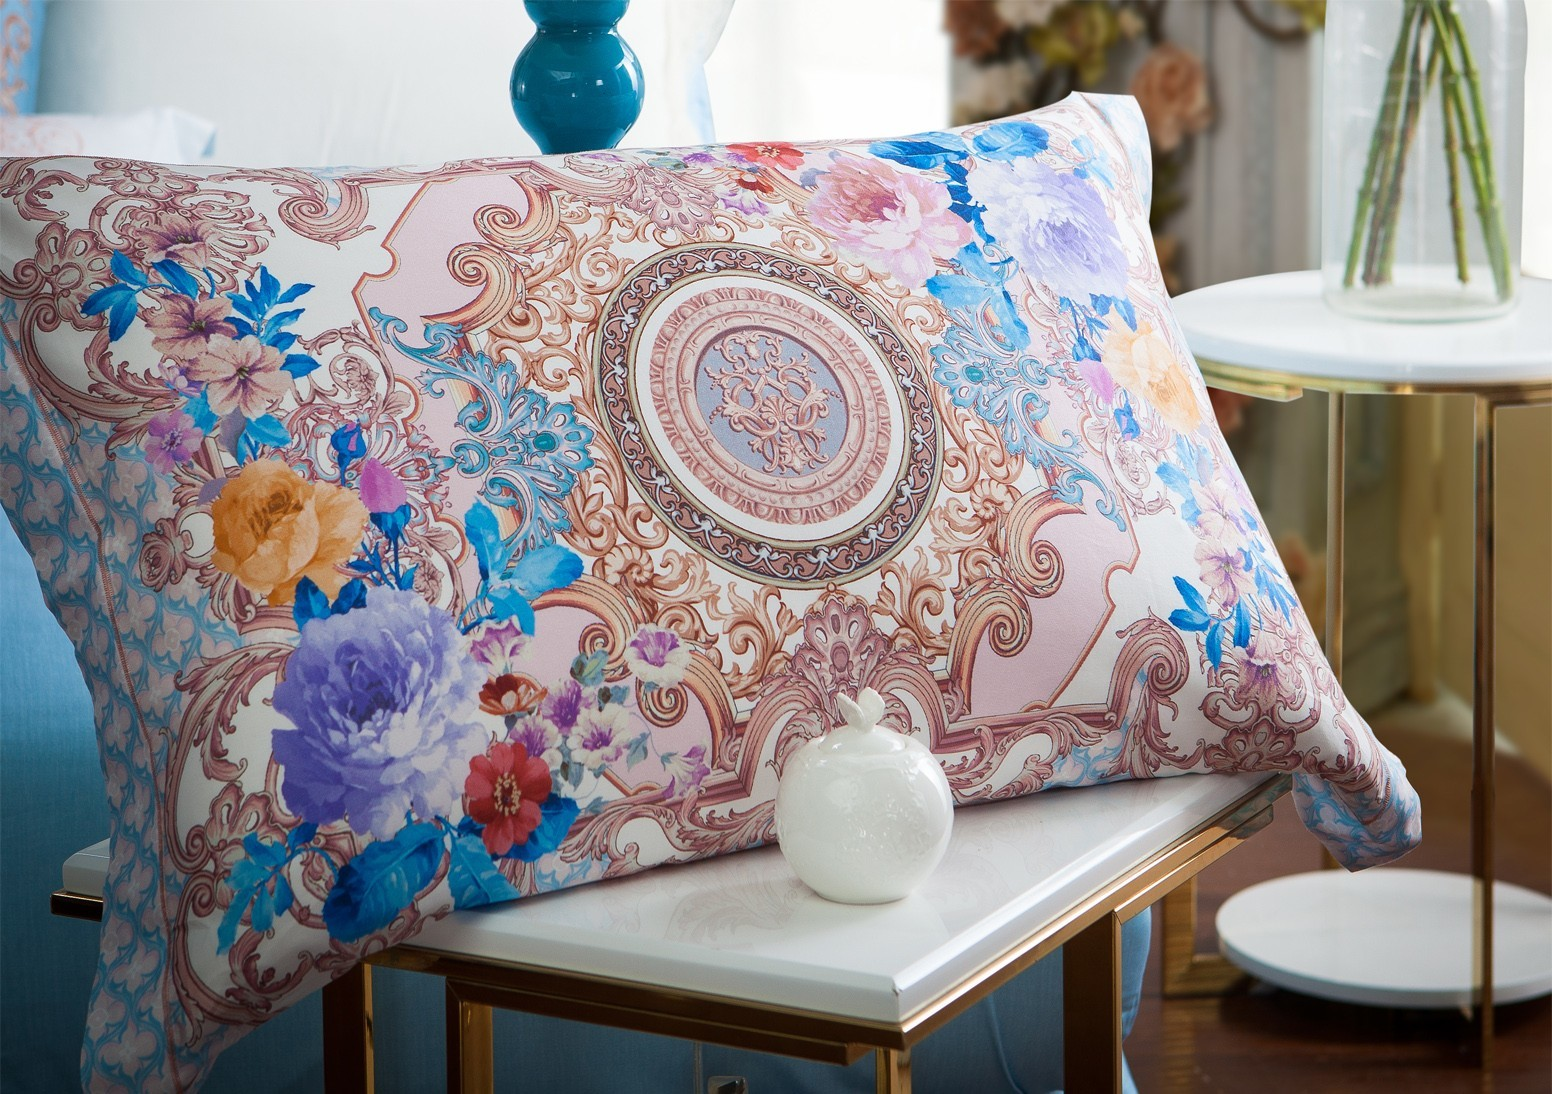 Daphne Brand vividly patterned Cotton Bedding Sets manufacture